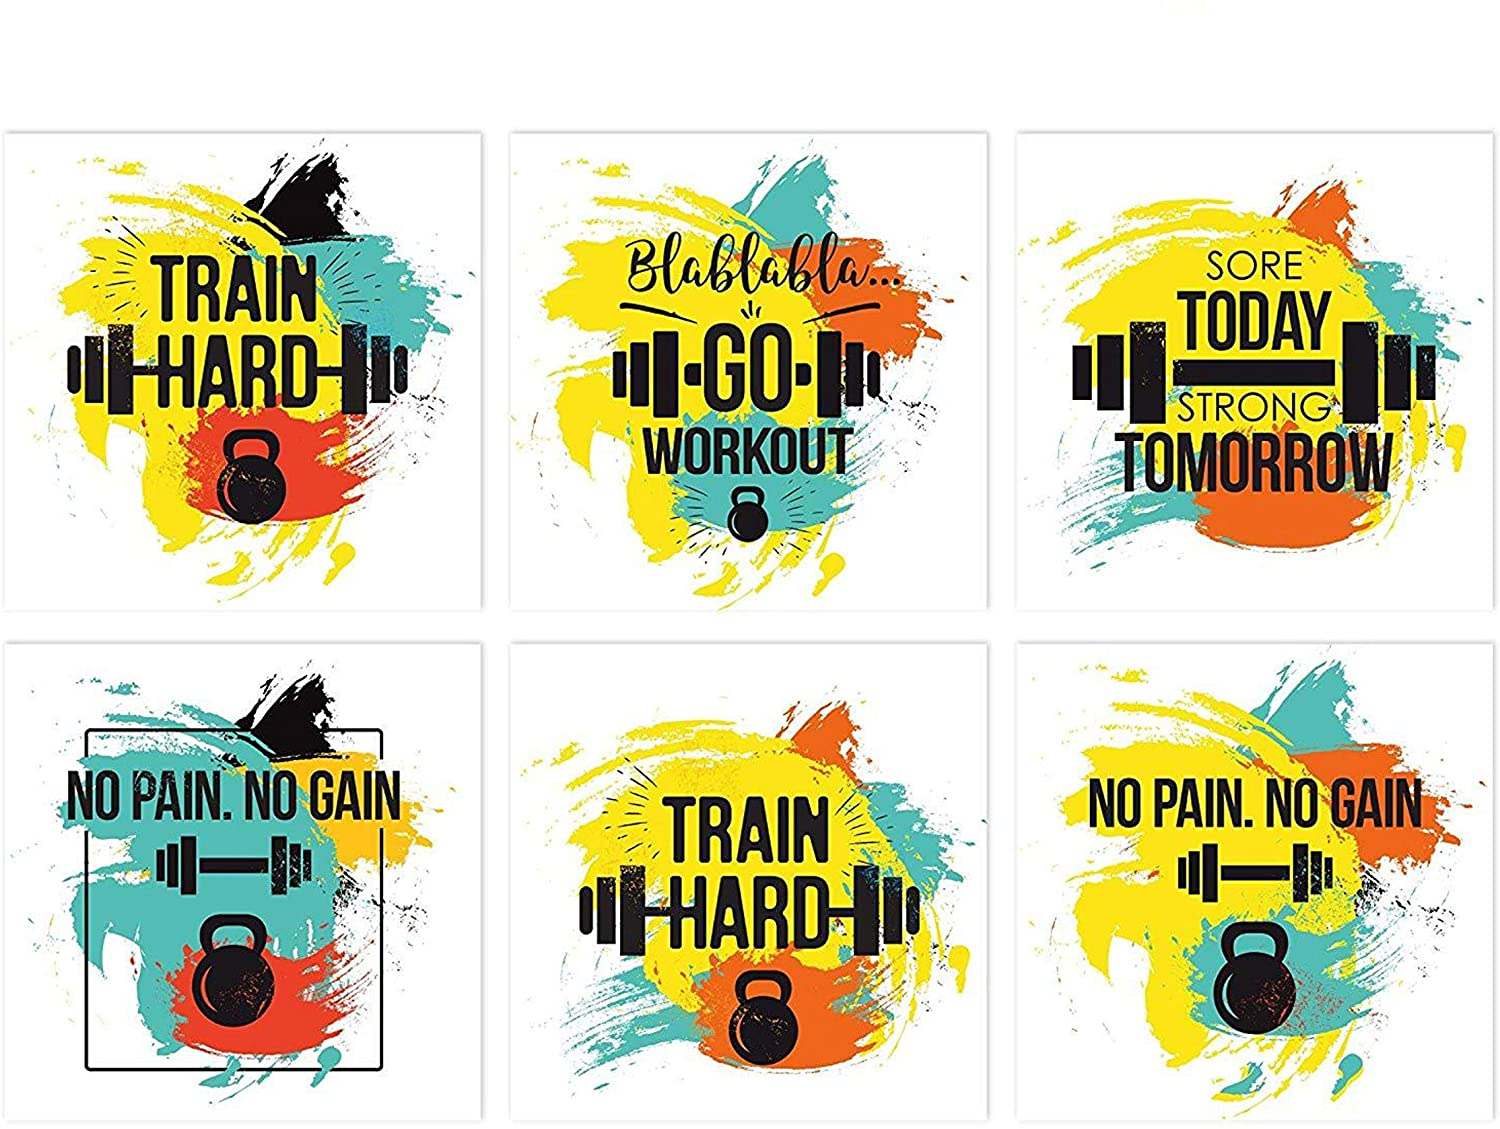 Home Gym Decor | Set Of 6 11x11 Inspirational Gym Posters | Motivational Fitness Wall Art | Quotes For Room Decor | Inspirational Workout Lover Gift